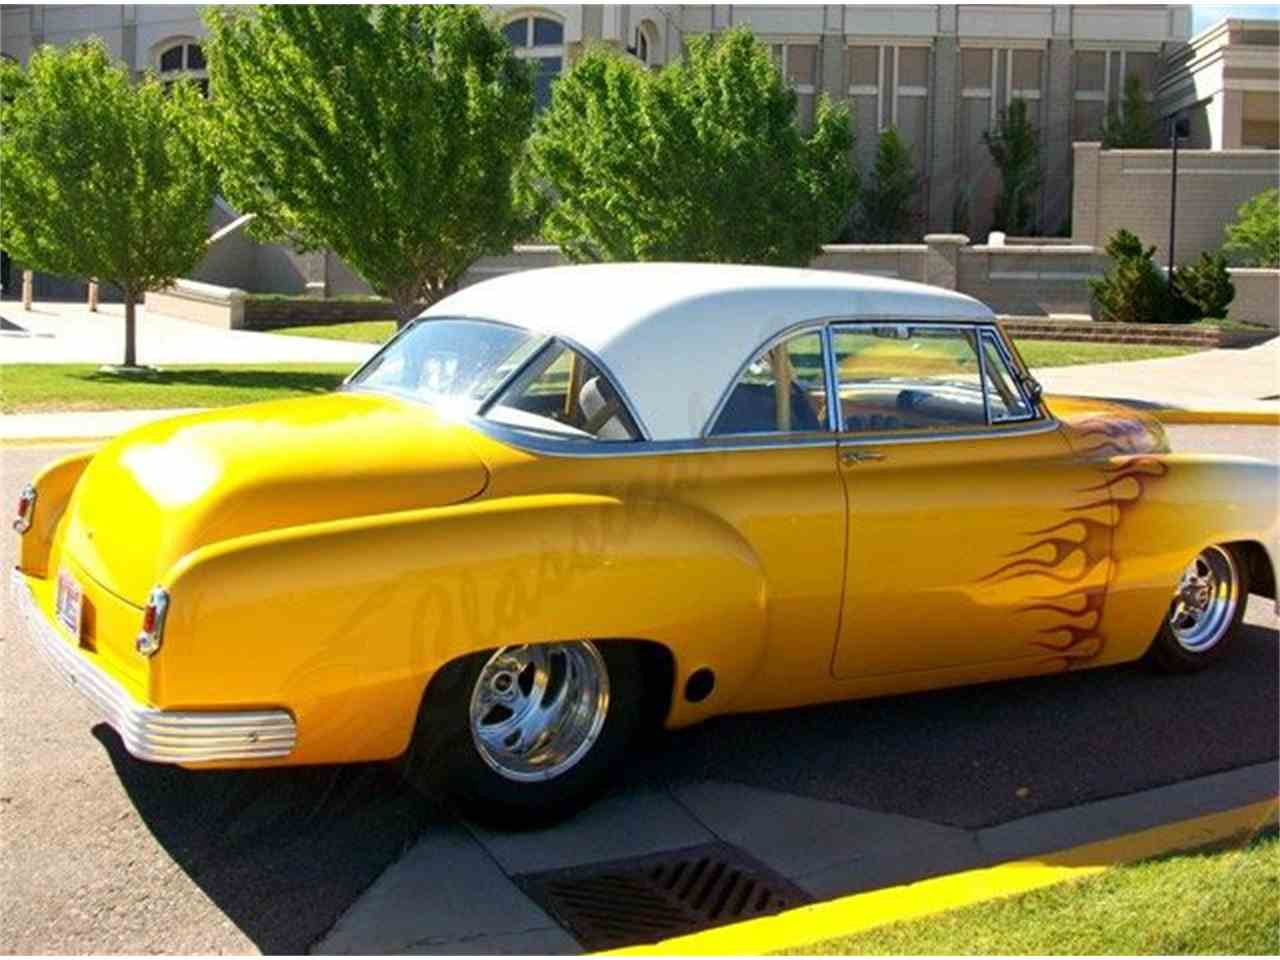 All Chevy 1951 chevrolet fleetline 1951 Chevrolet FLEETLINE CUSTOM COUPE for Sale | ClassicCars.com ...